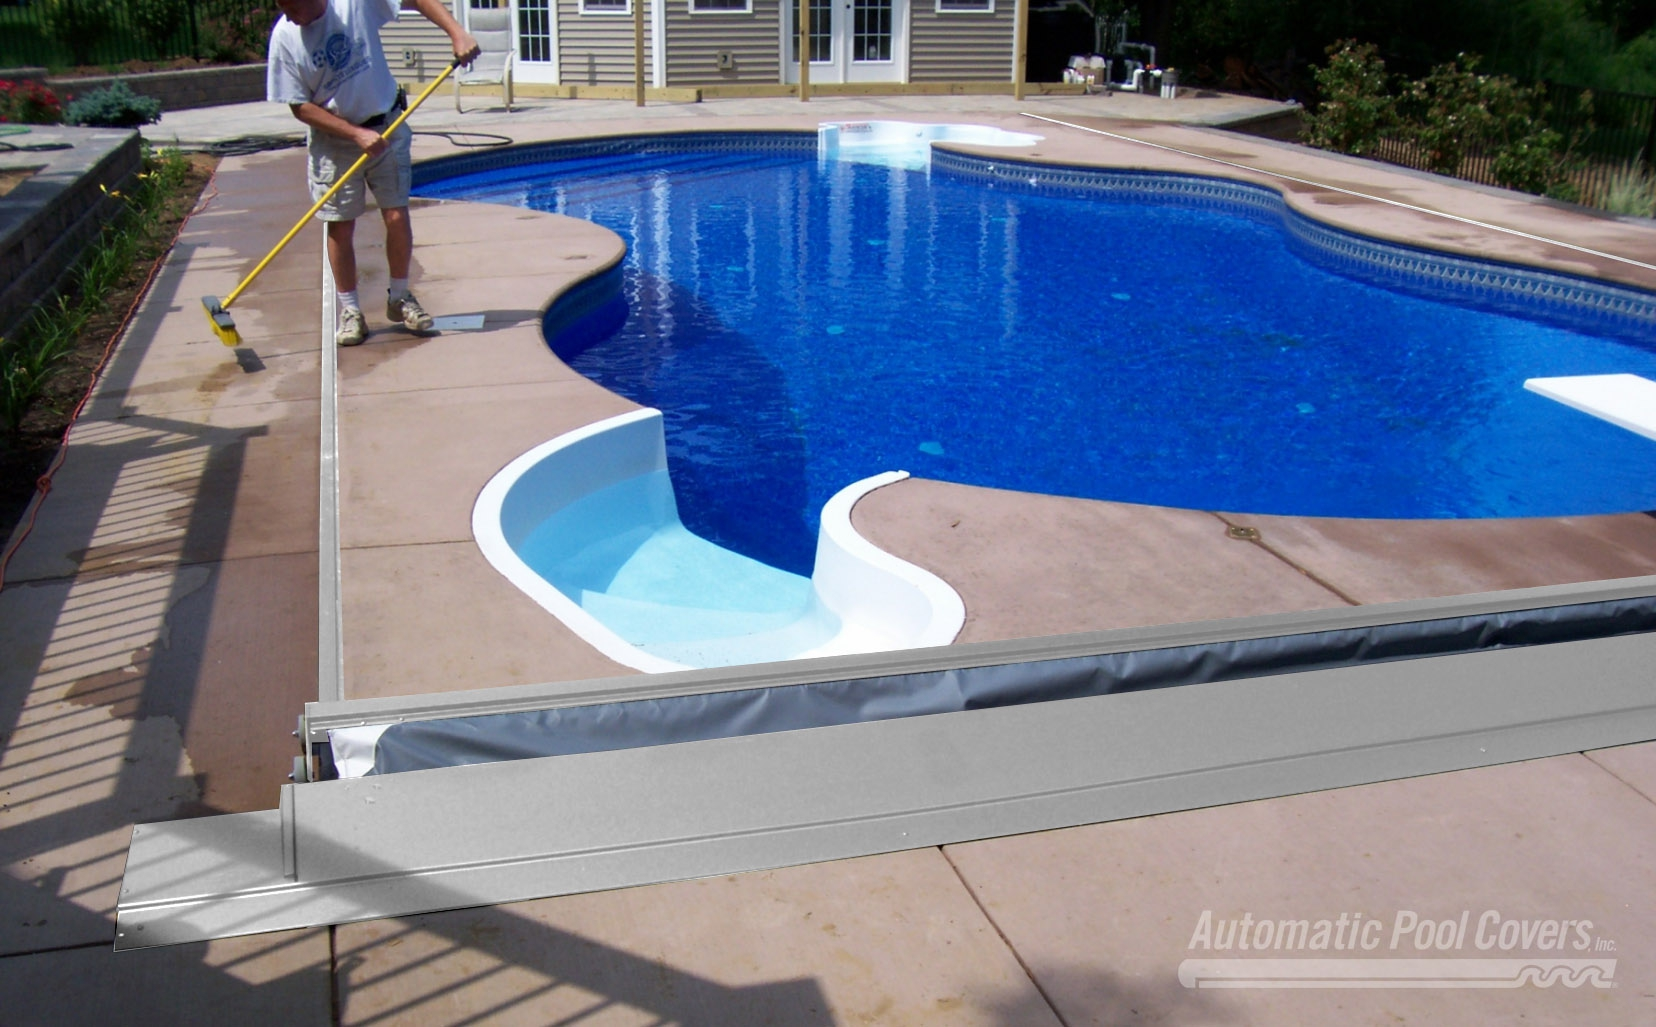 Automatic Pool Covers Images Reverse Search